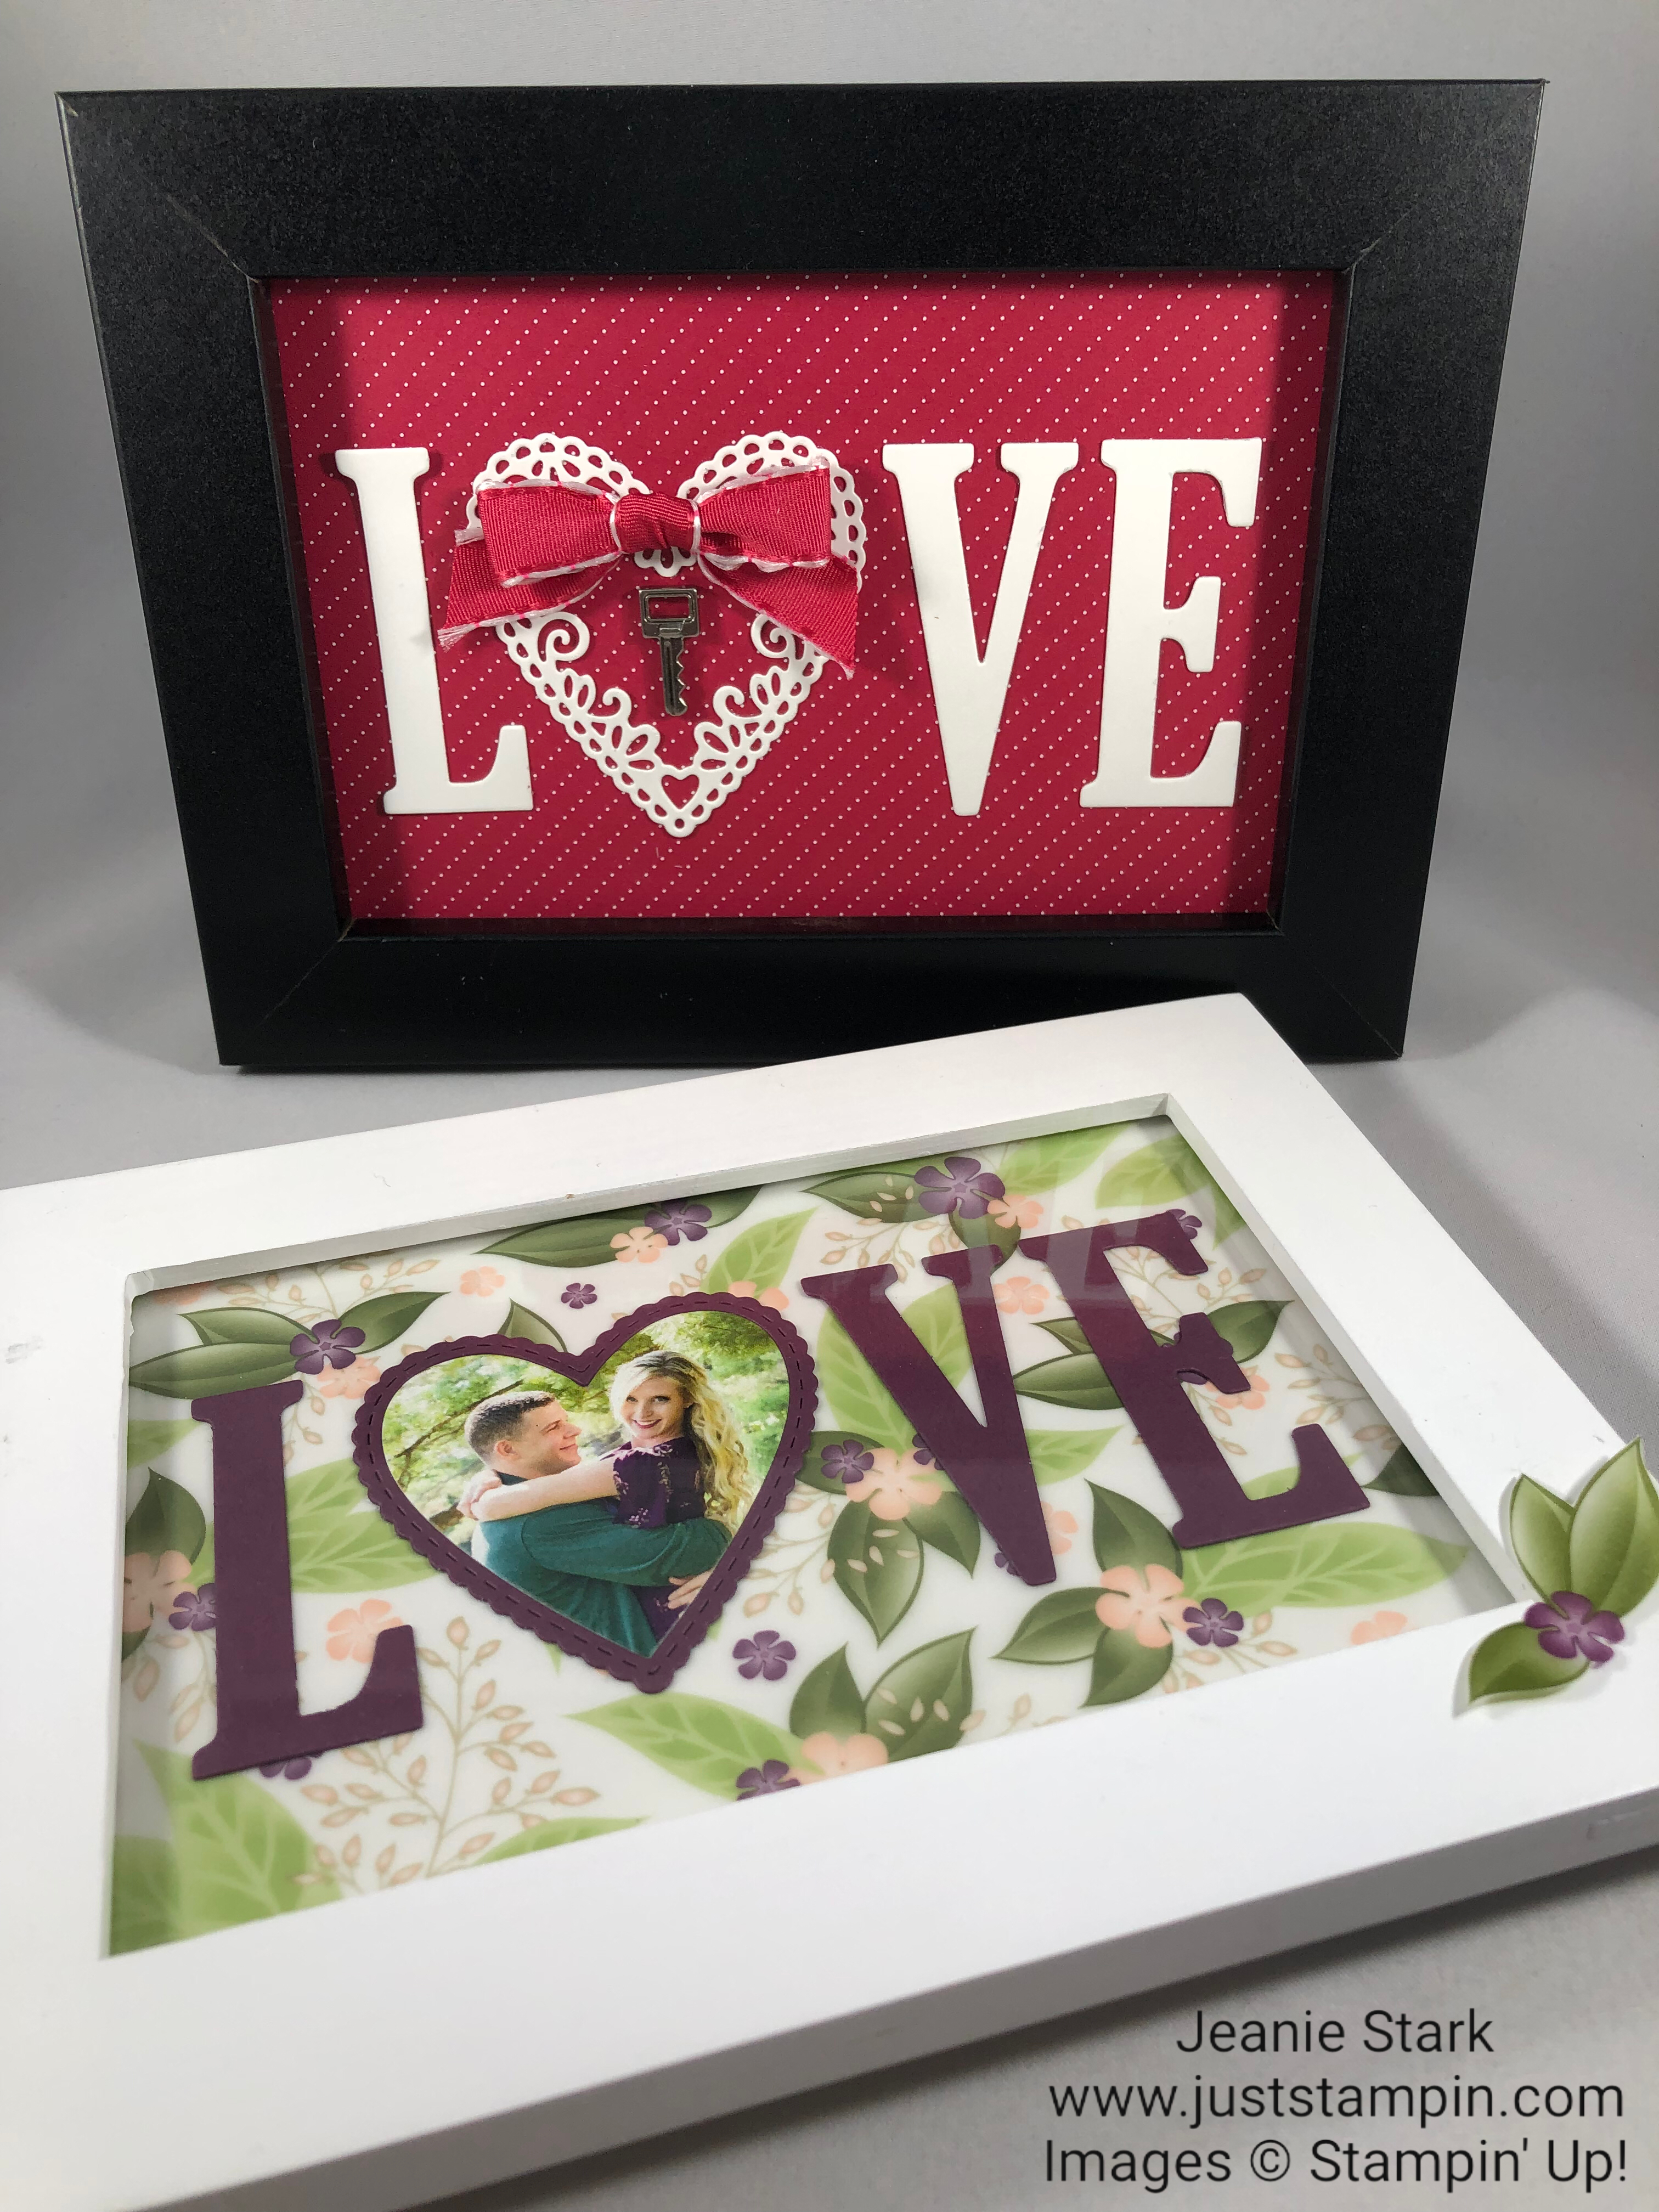 Stampin Up Large Letter Framelits and Be Mine Stitched Framelits Dies Framed Art Gift Ideas for Valentine's Day, Wedding, or Anniversary - Jeanie Stark StampinUp